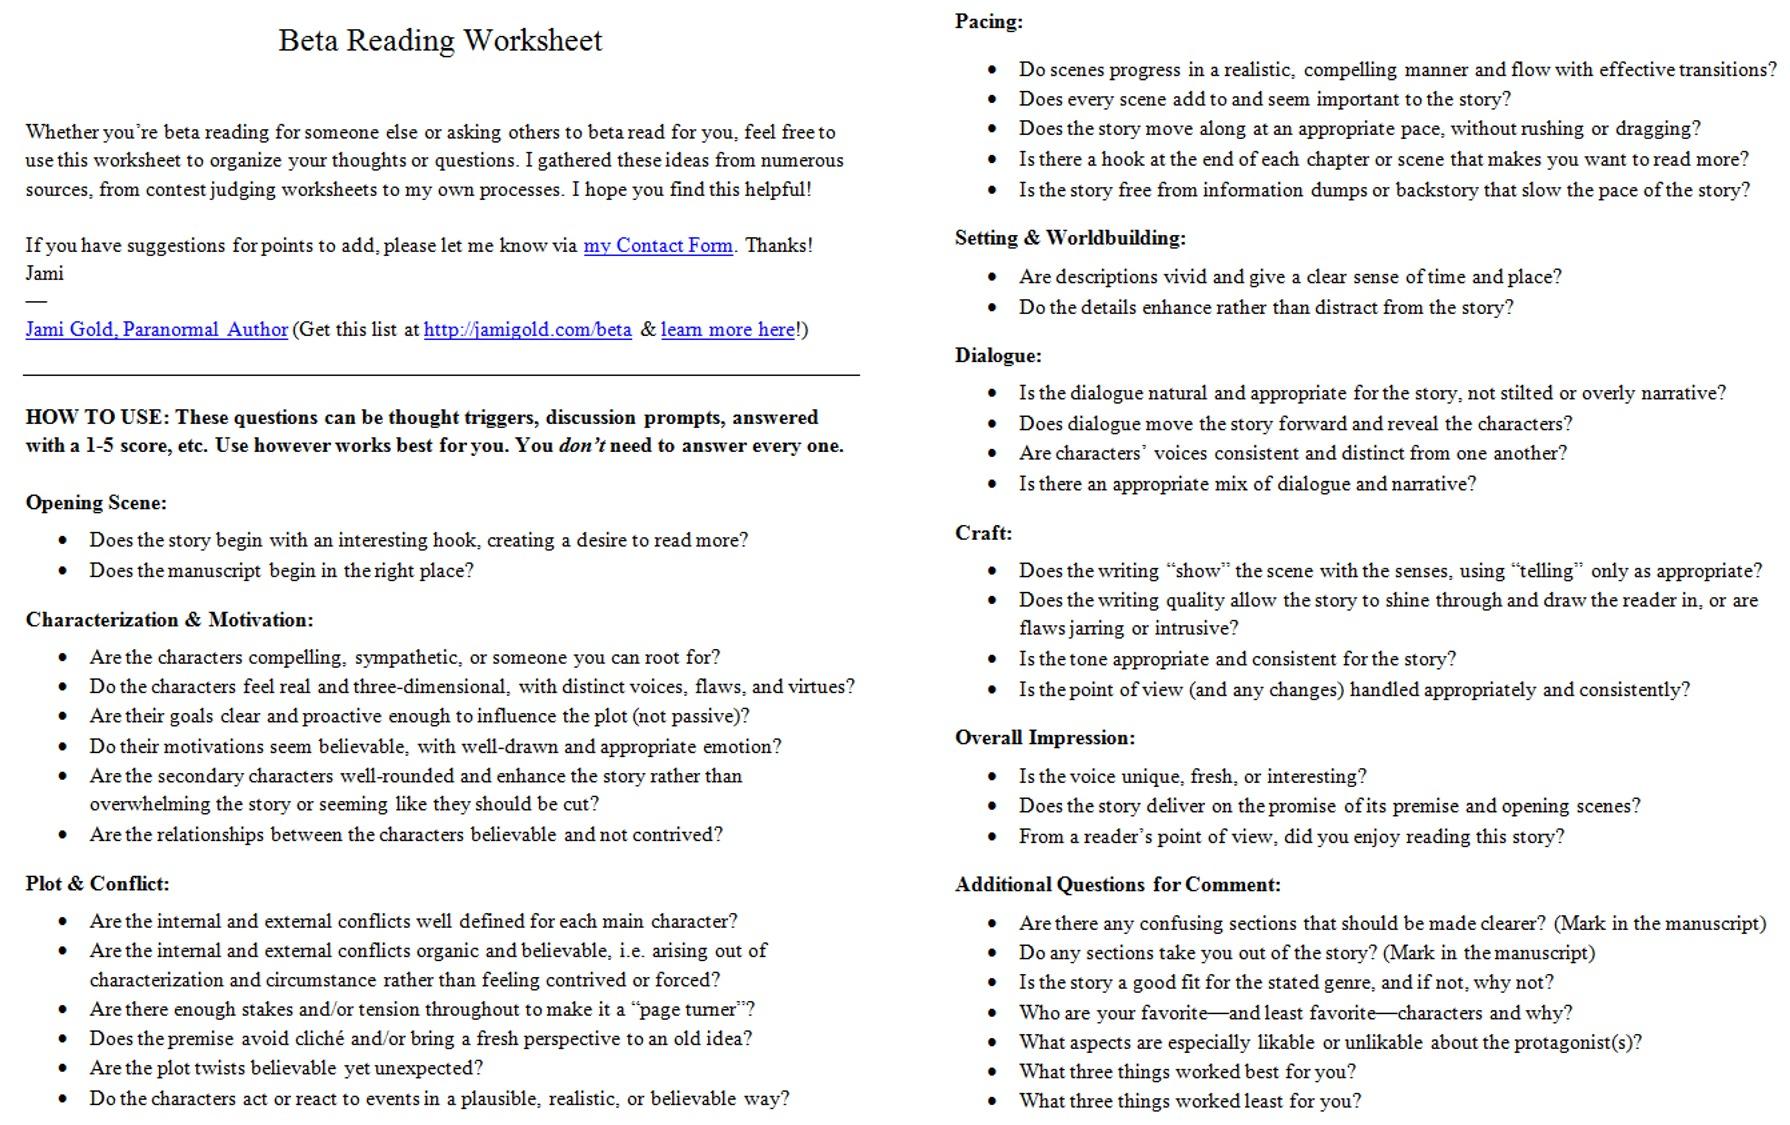 Aldiablosus  Winsome Worksheets For Writers  Jami Gold Paranormal Author With Hot Screen Shot Of The Twopage Beta Reading Worksheet With Captivating Th Grade Poetry Worksheets Also Syntax Worksheets In Addition Vocabulary Worksheets Middle School And Coat Of Arms Worksheet As Well As Brain Games Worksheets Additionally Listening Comprehension Worksheets From Jamigoldcom With Aldiablosus  Hot Worksheets For Writers  Jami Gold Paranormal Author With Captivating Screen Shot Of The Twopage Beta Reading Worksheet And Winsome Th Grade Poetry Worksheets Also Syntax Worksheets In Addition Vocabulary Worksheets Middle School From Jamigoldcom